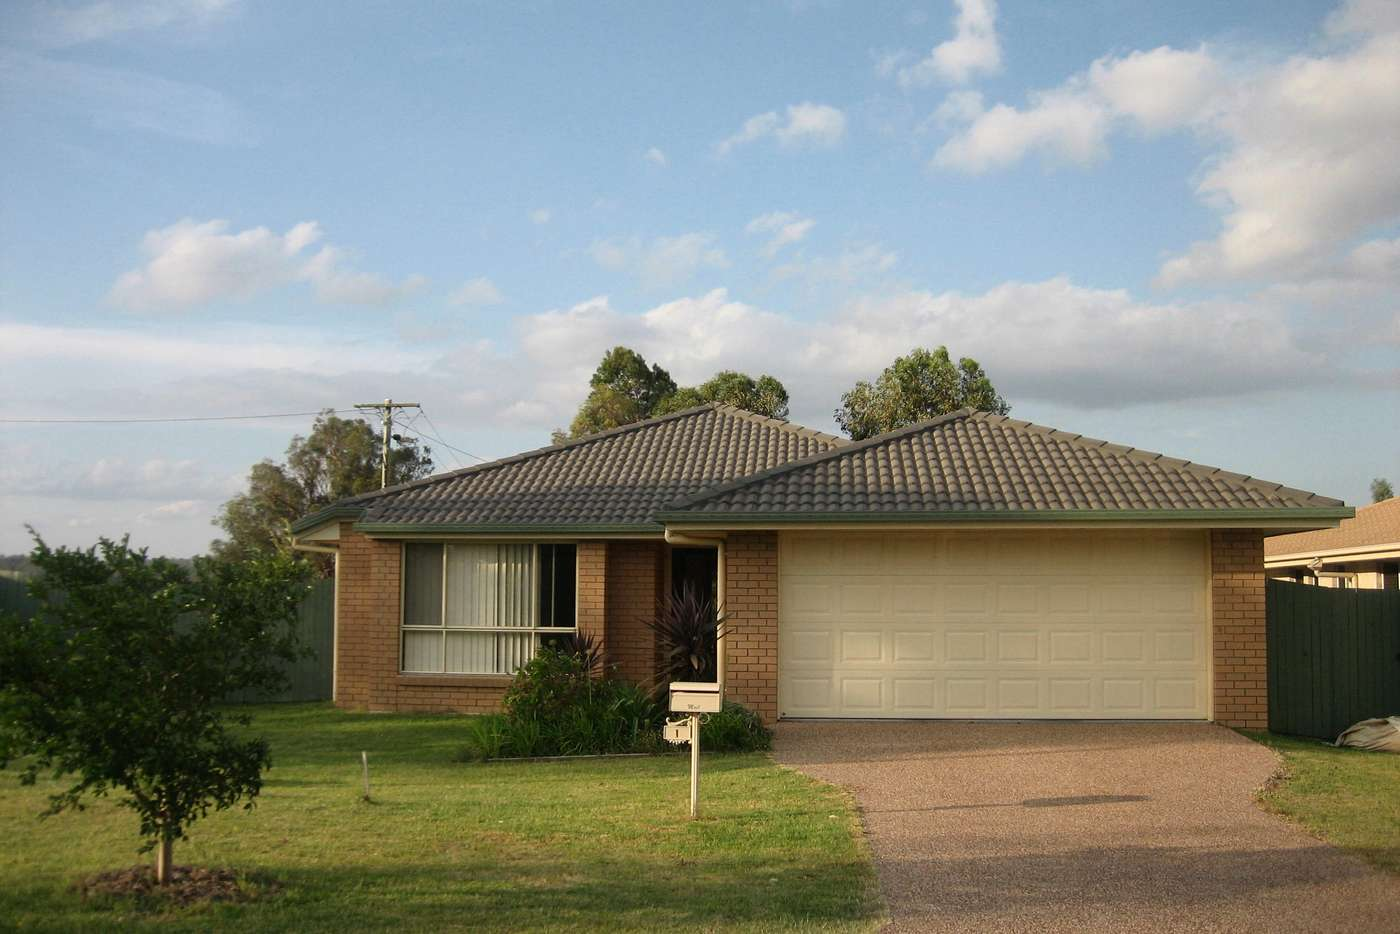 Main view of Homely house listing, 1 Lomandra Court, Warwick QLD 4370